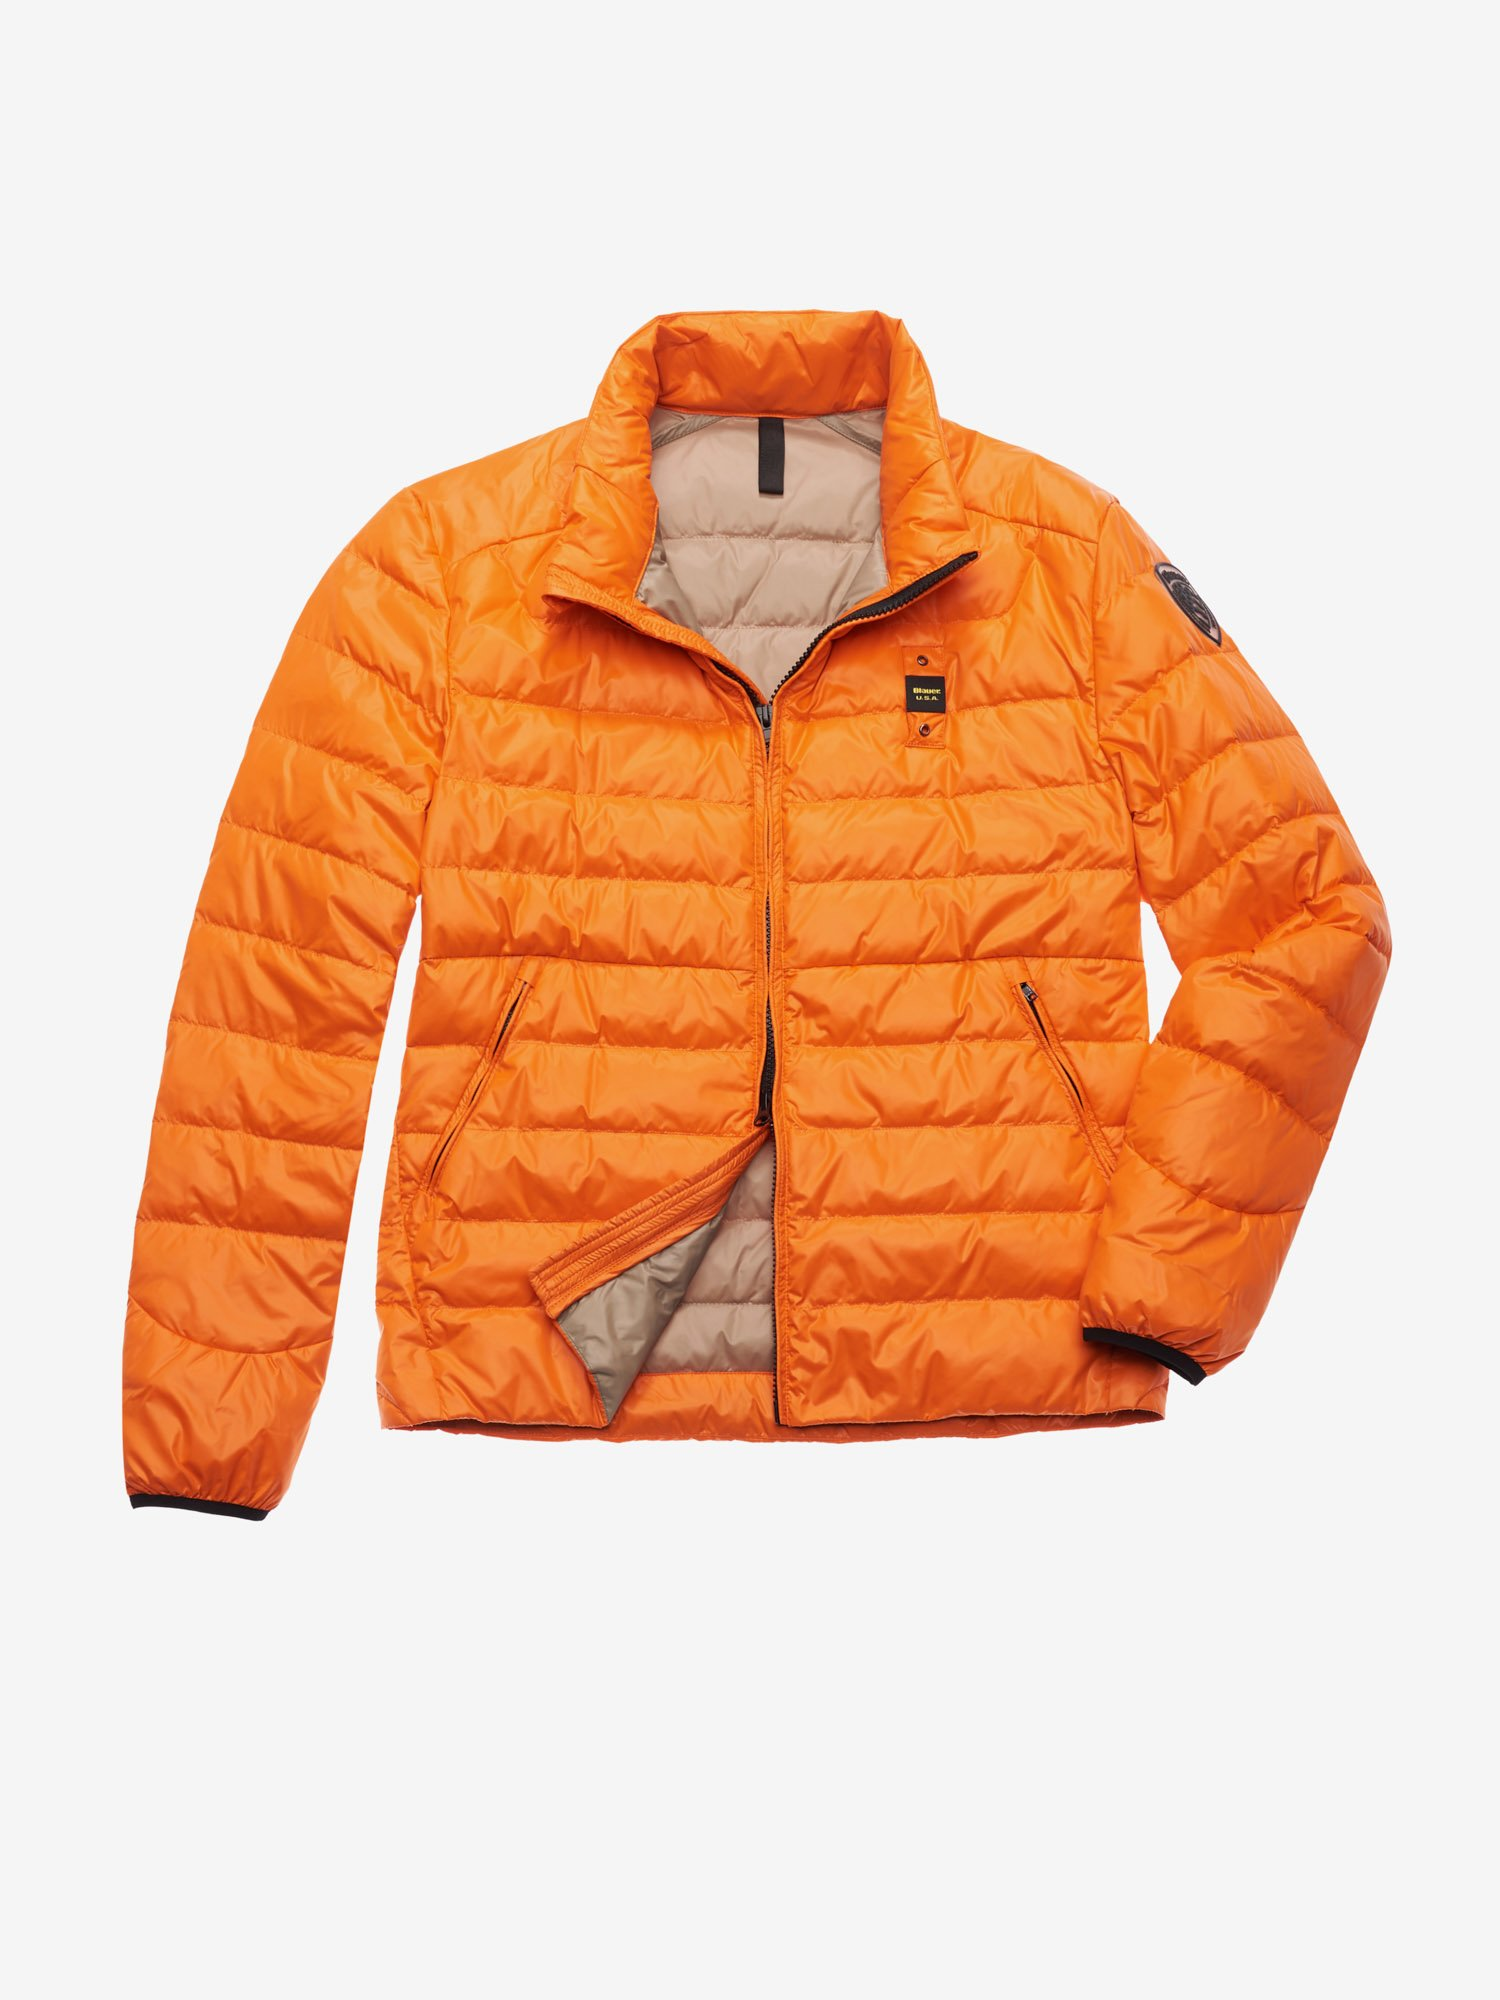 bacd5271a88 Blauer - YOUNG 100 GR DOWN JACKET - Orange Ins. light Nut - 1 ...